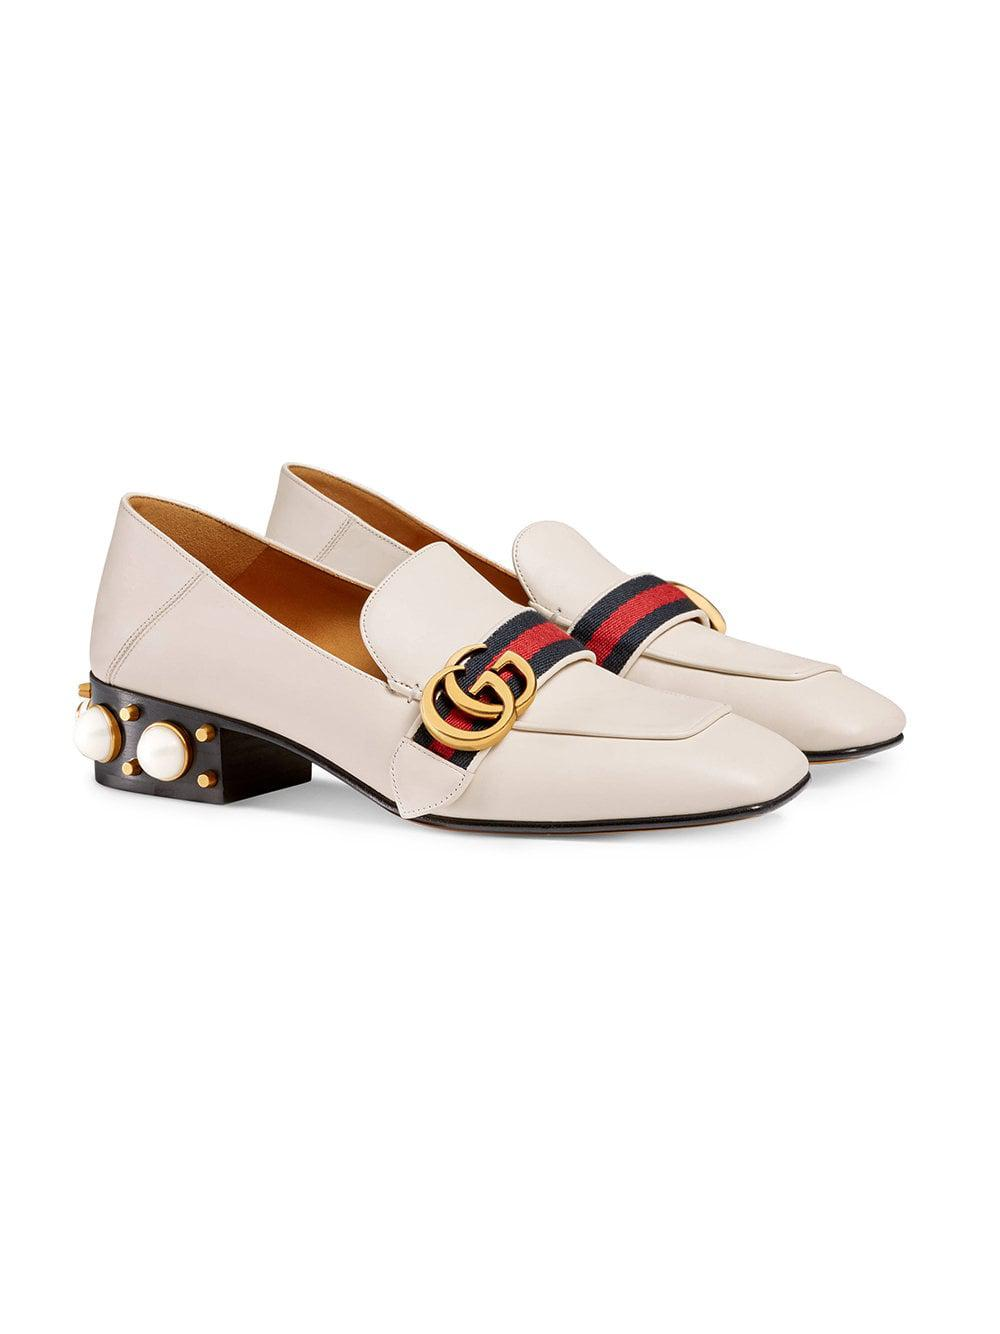 512542cd1c19 Lyst - Gucci Peyton Pearl Embellished Leather Loafers - Save 27%